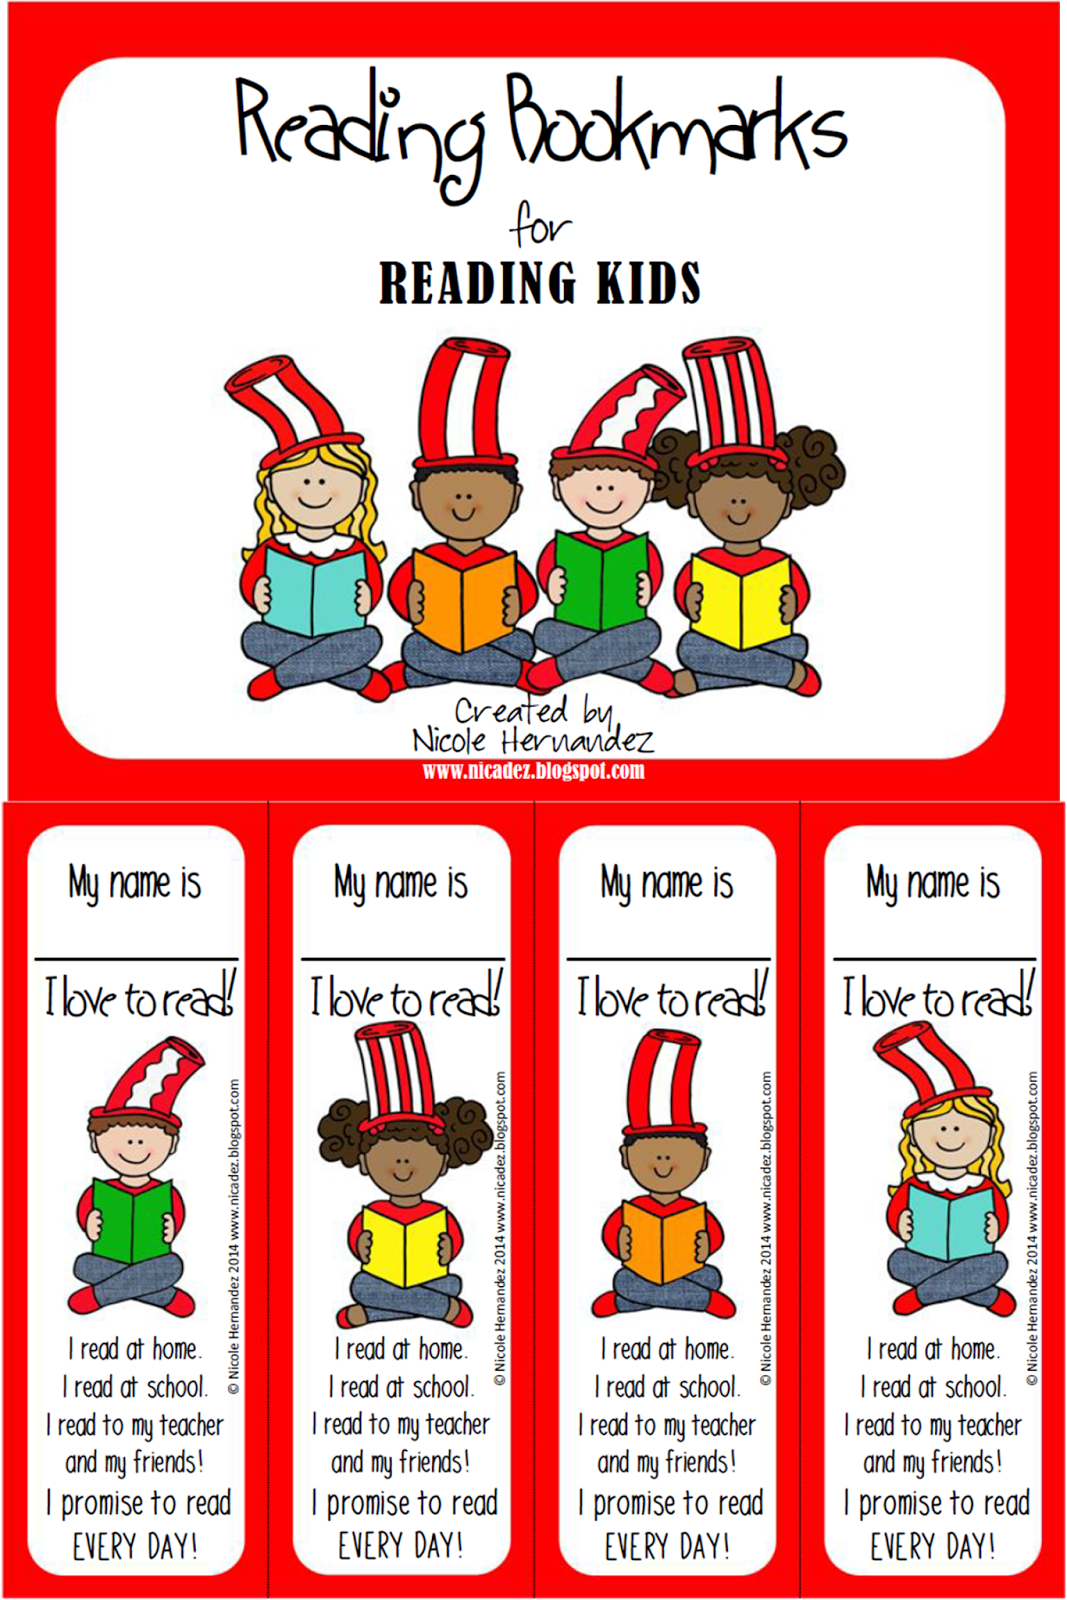 http://www.teacherspayteachers.com/Product/Reading-Bookmarks-for-Reading-Kids-Six-options-to-choose-from-1134402